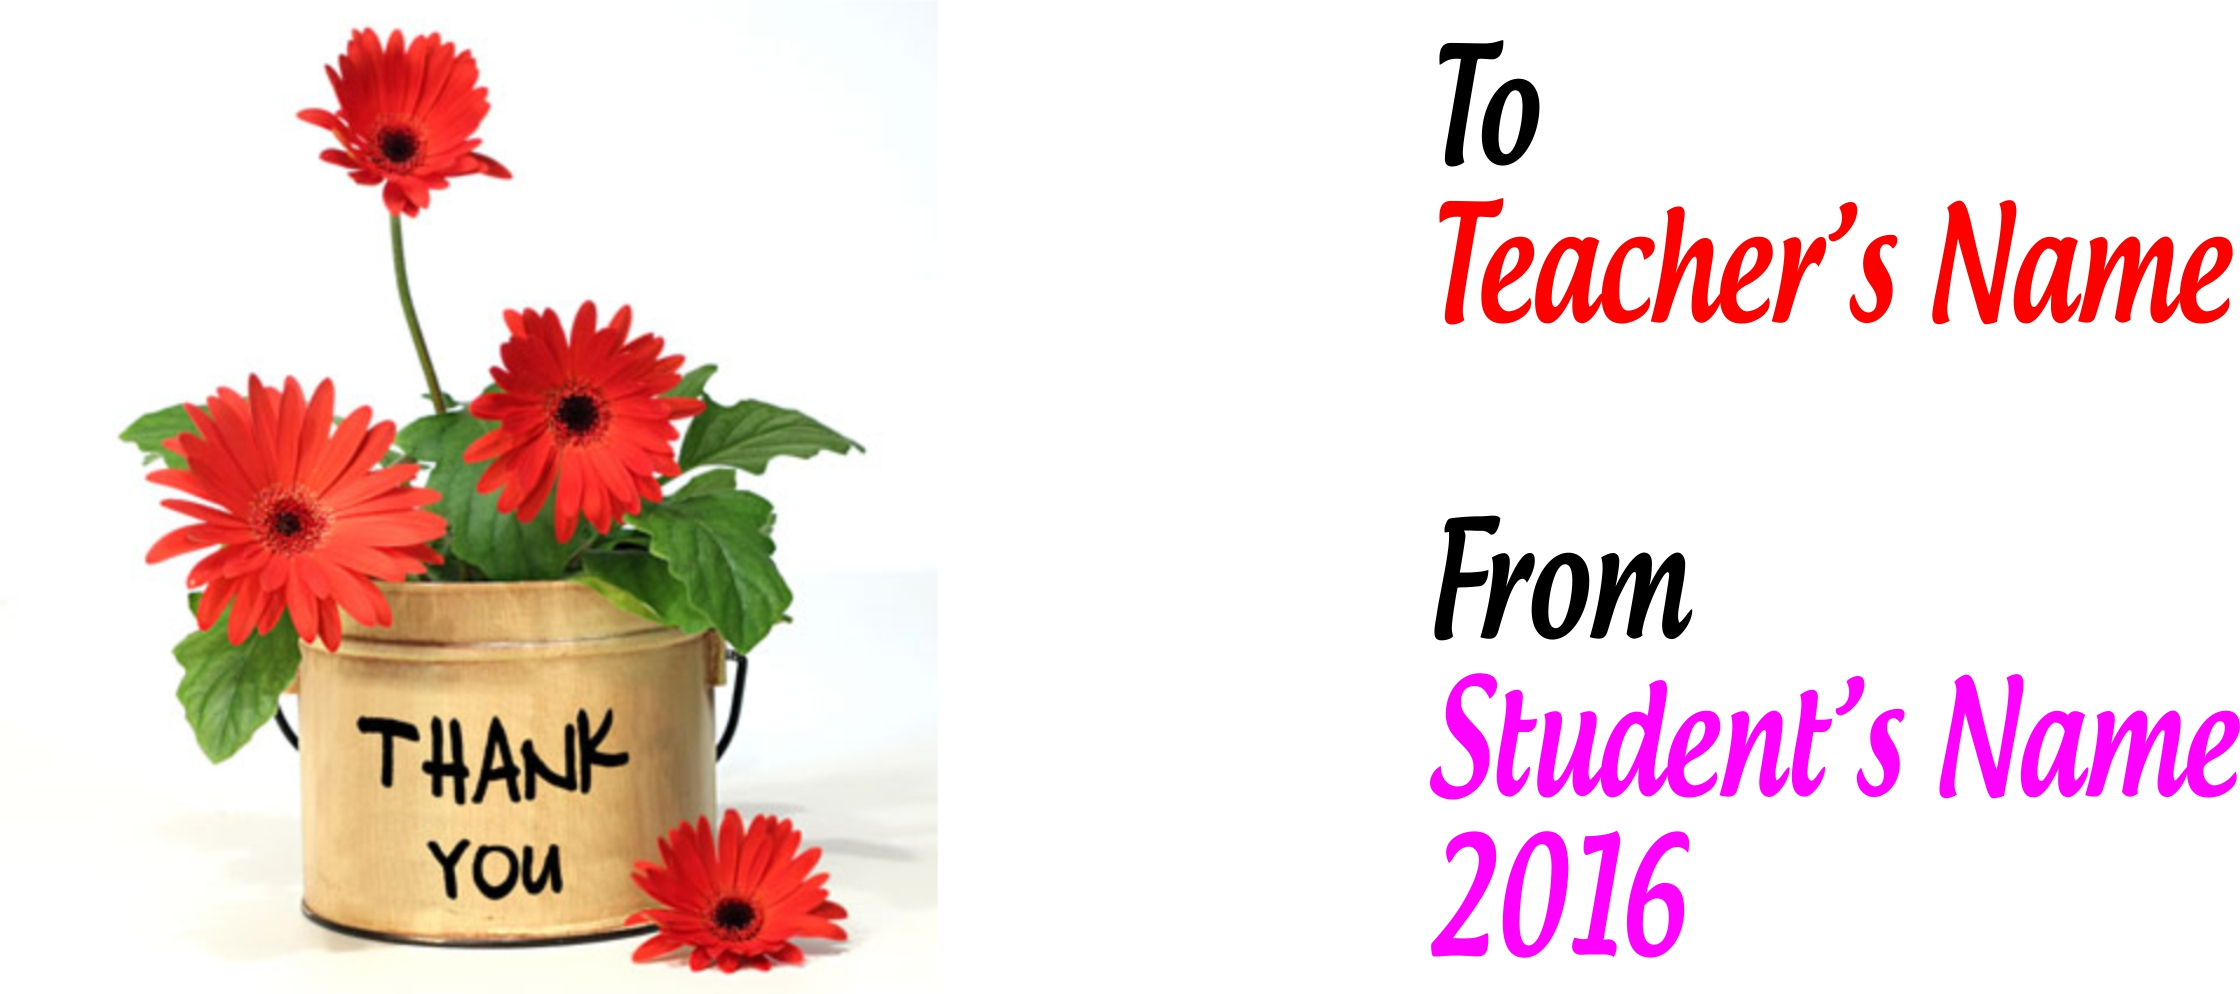 flower-bucket-thank-you-teacher.jpg